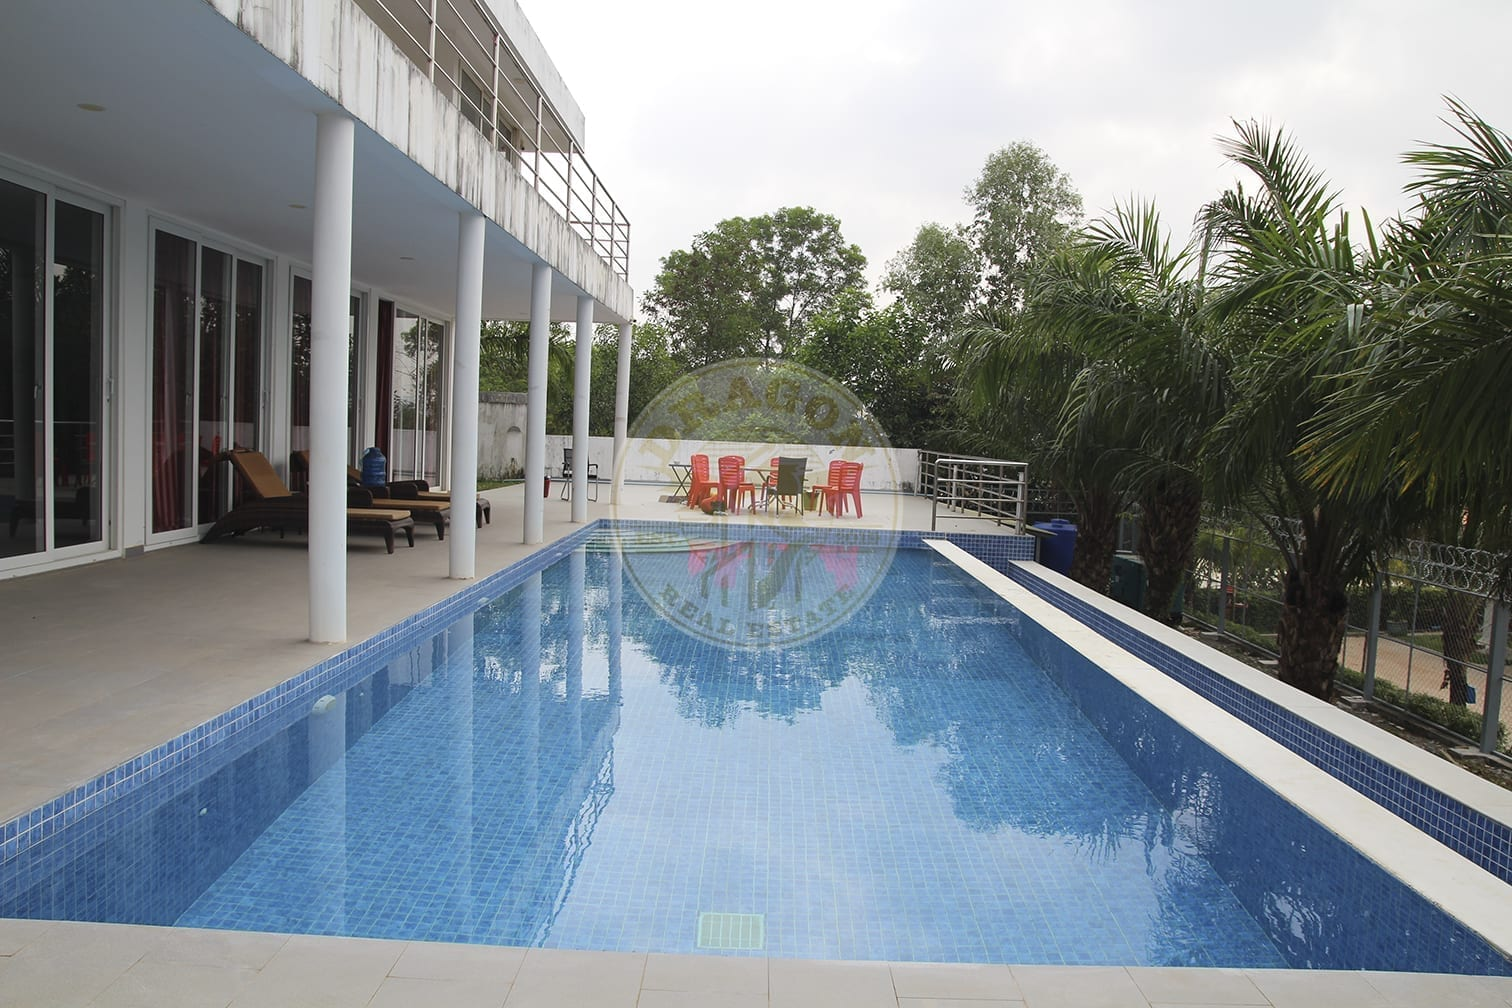 Villa with 6 Bedrooms and Bathroom. Sihanoukville Cambodia Property Sale